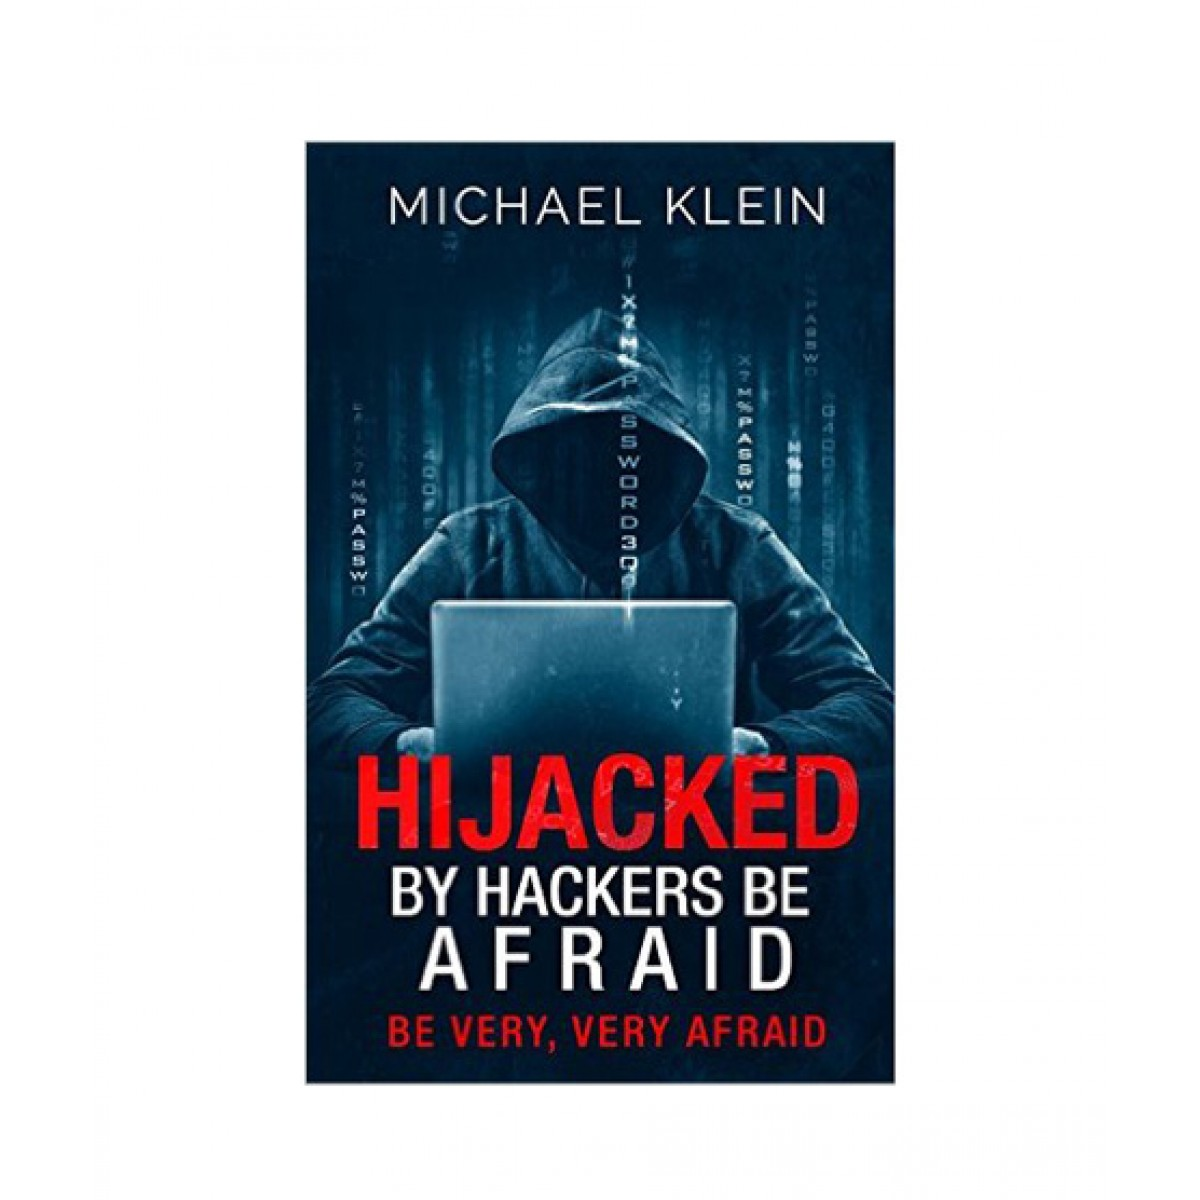 Hijacked By Hackers Be Afraid Book